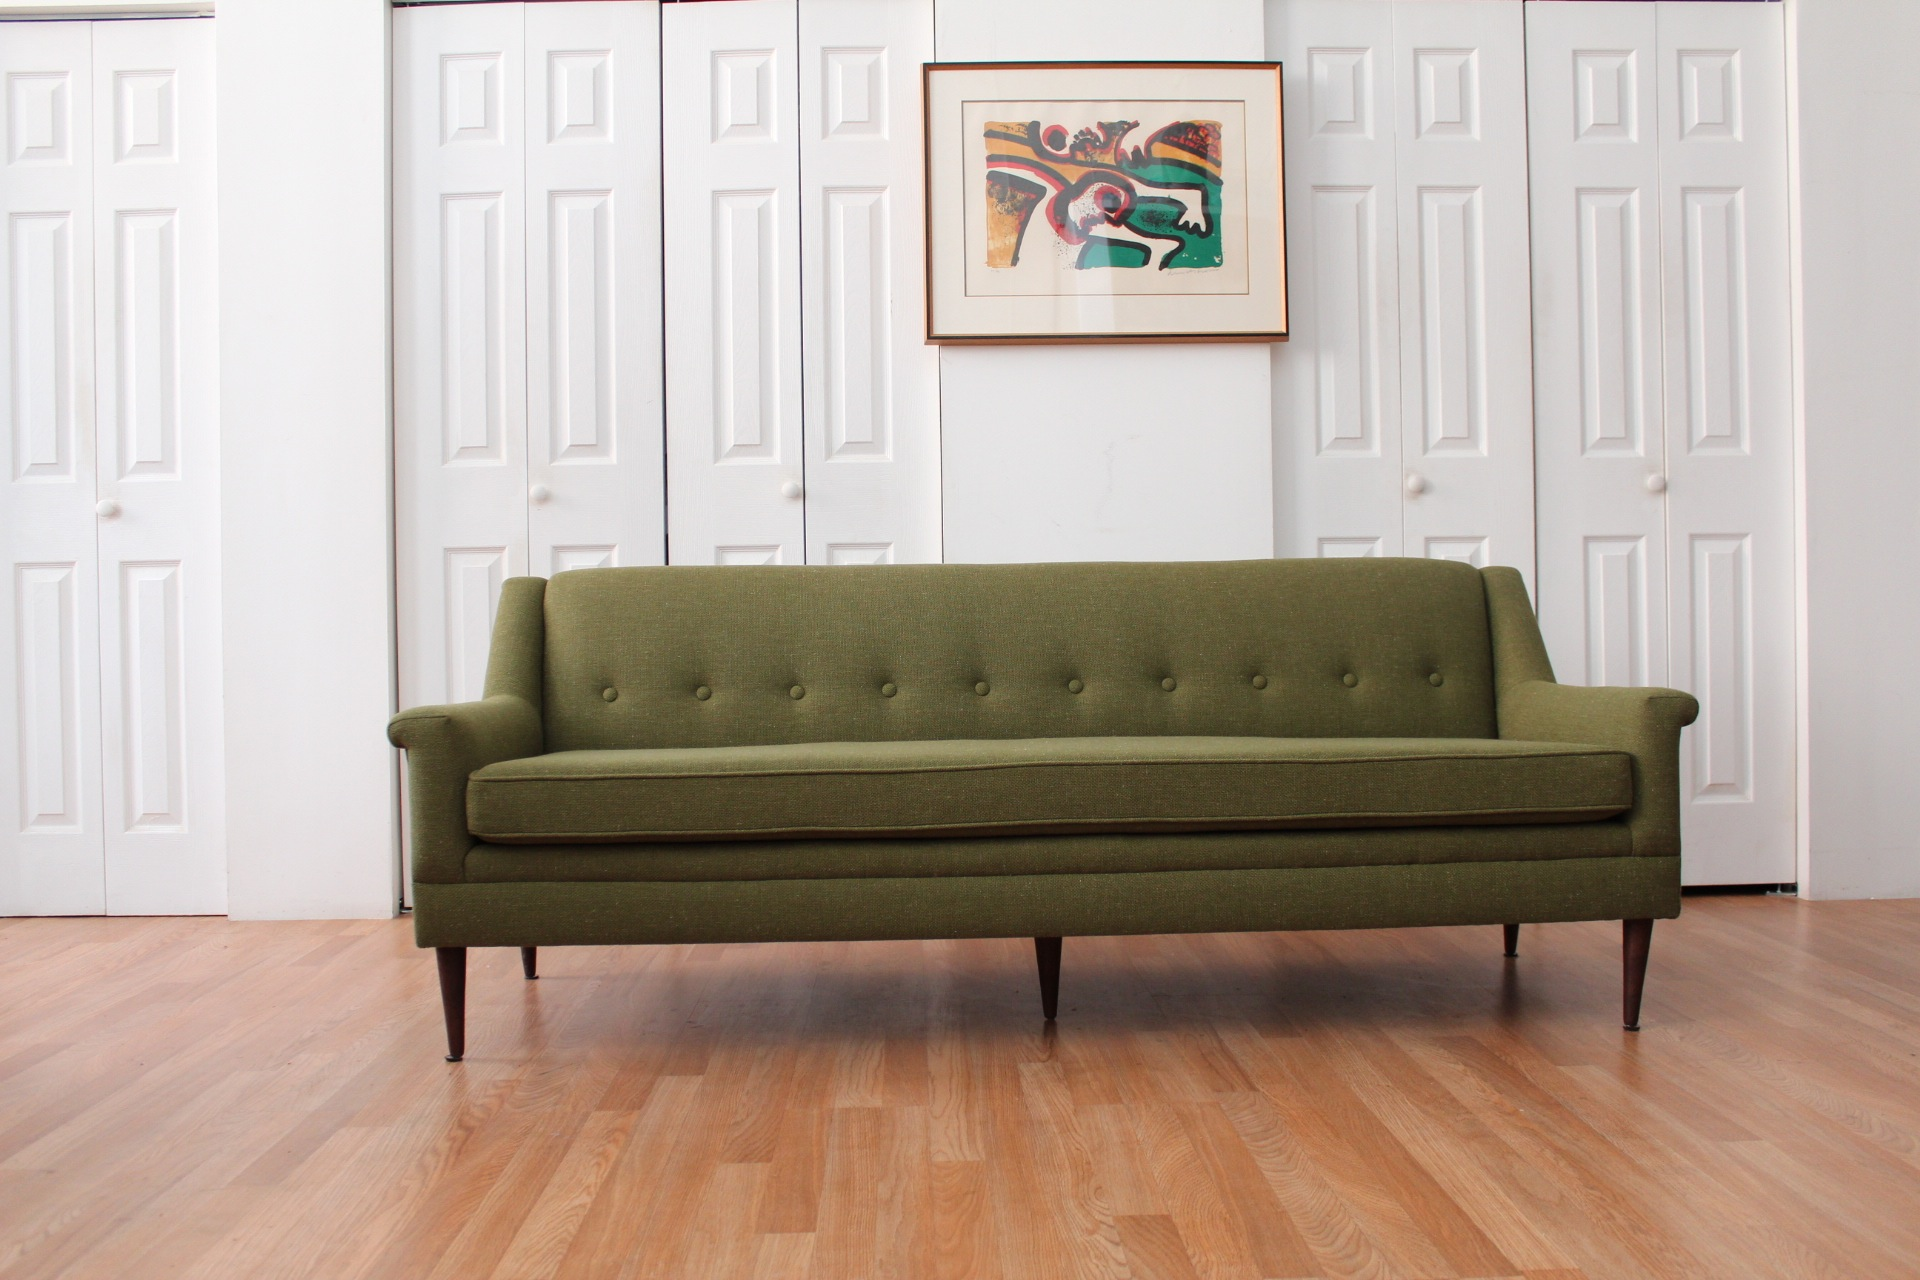 Olive Green Sofa Audrey Olive Green Upholstered Sofa Set